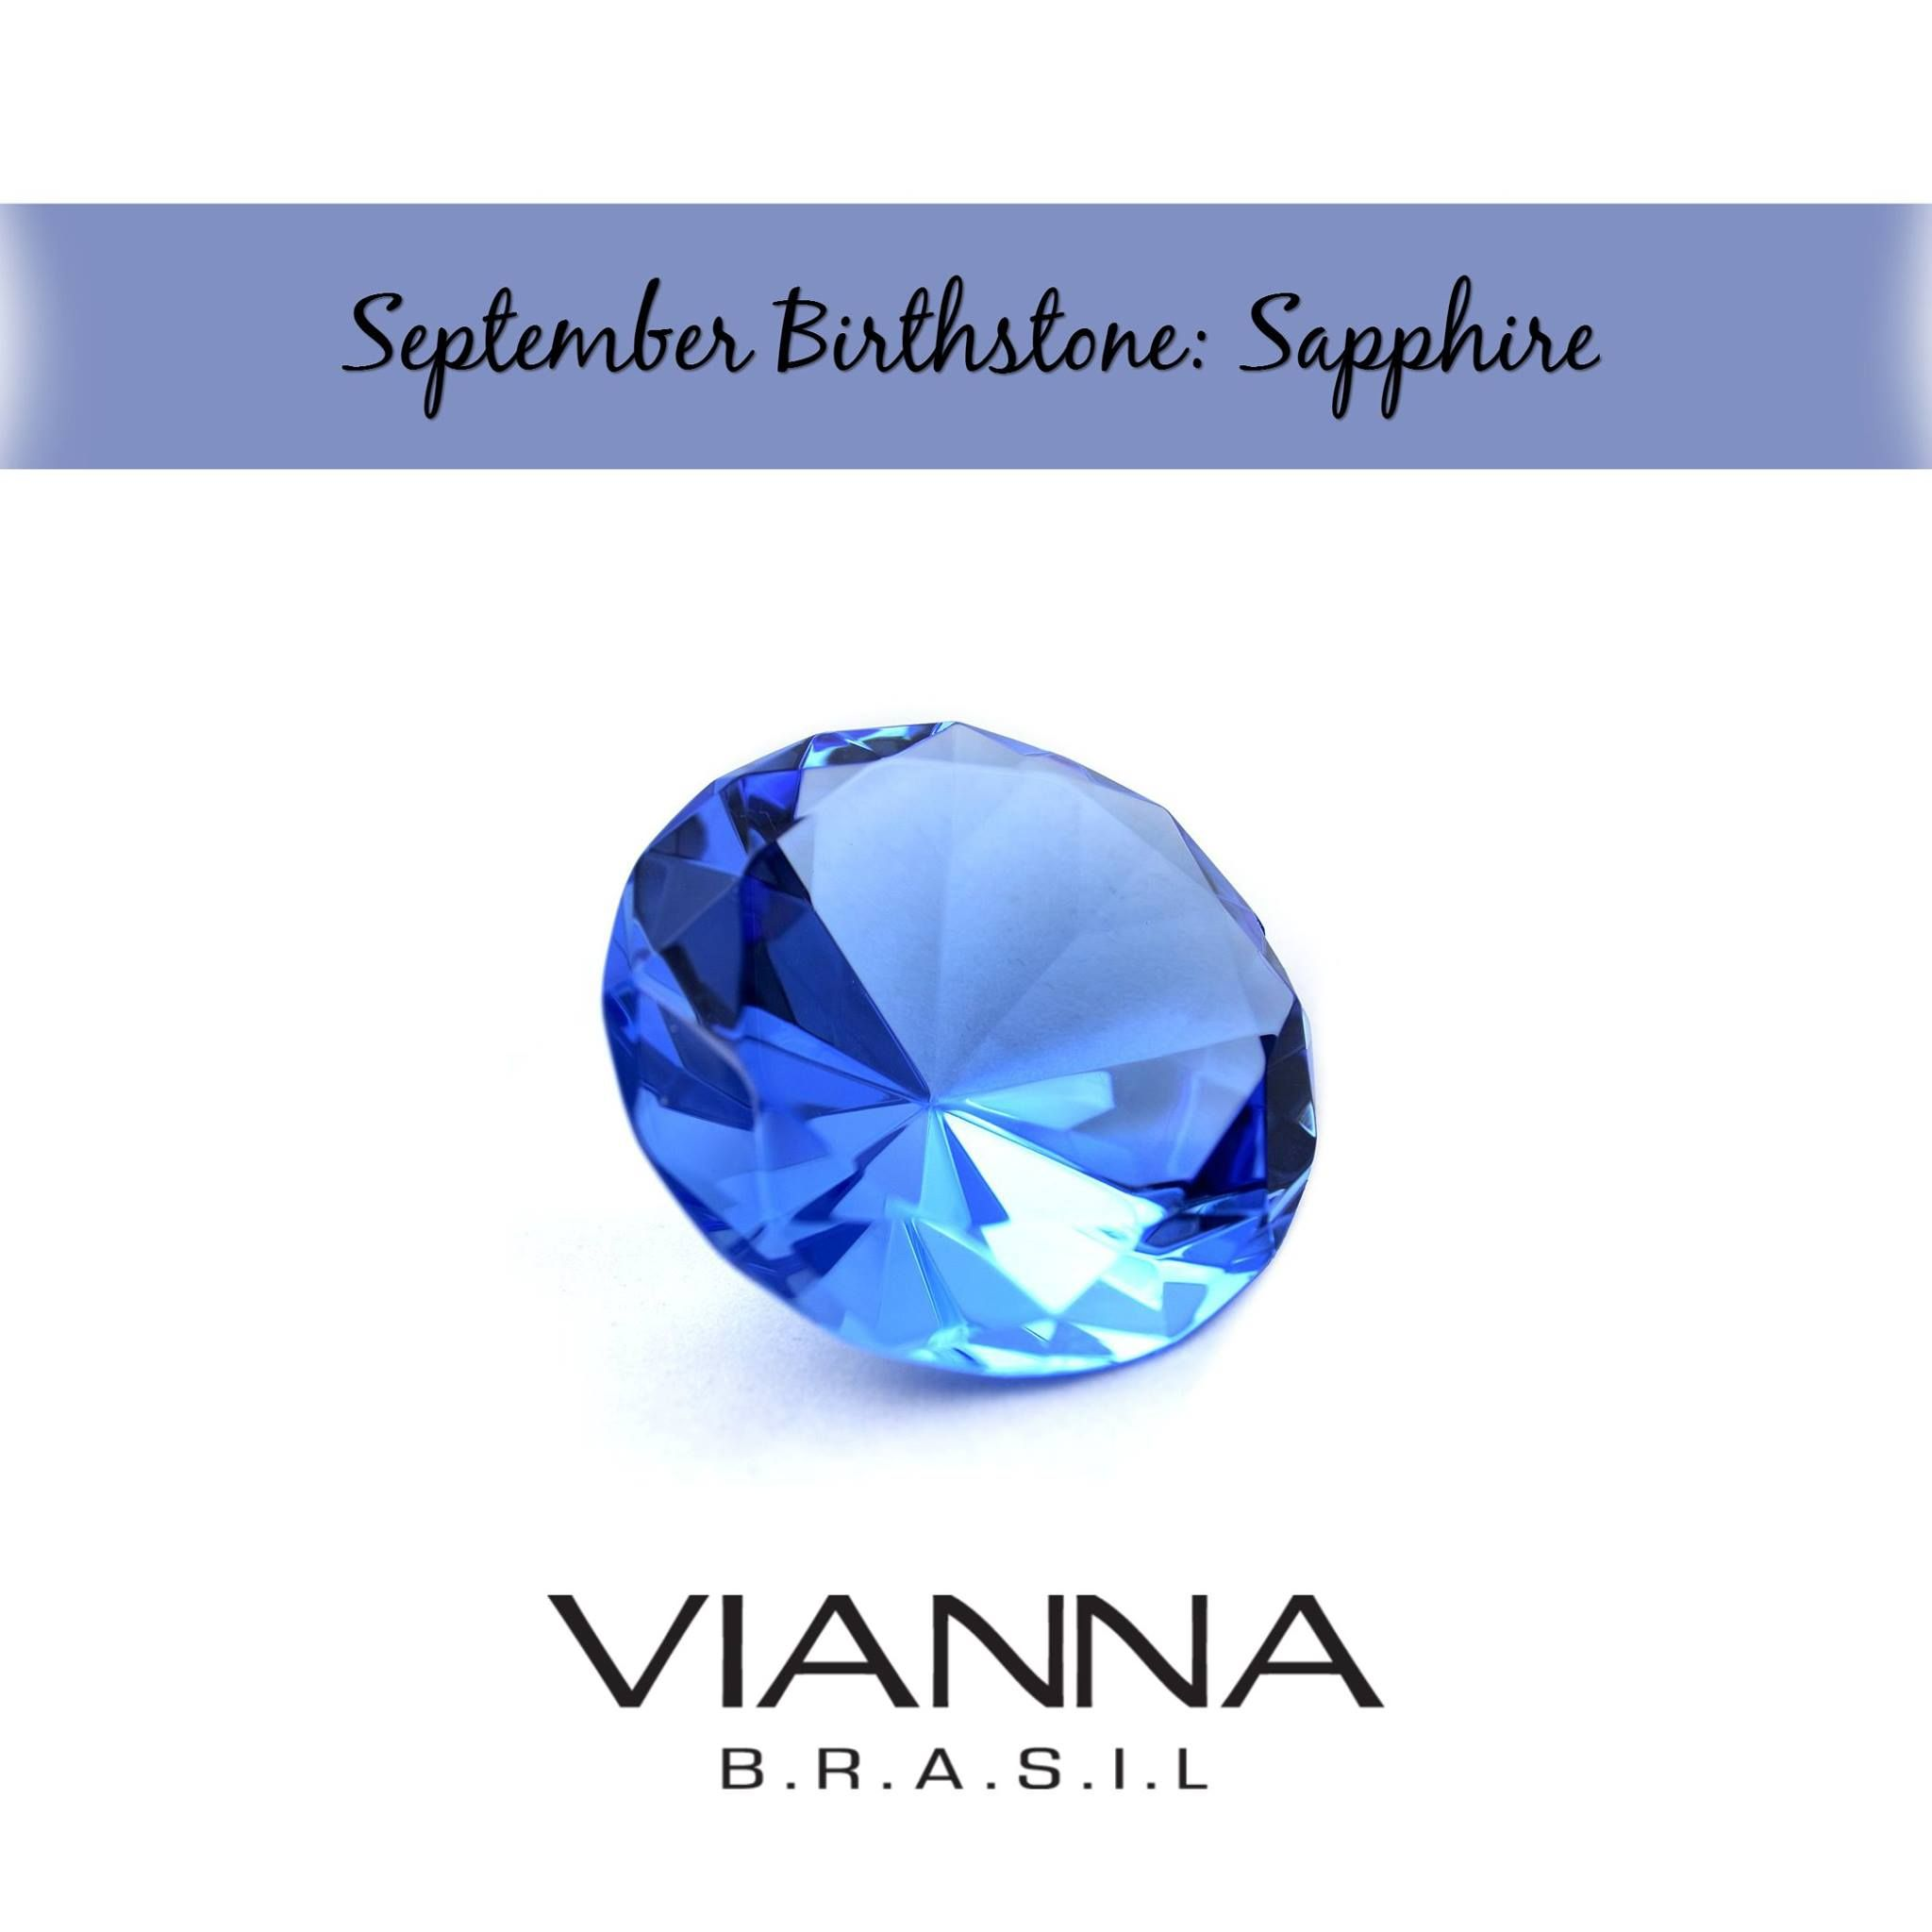 this gem color bright birthstone article than high rare centerstone with rarer ring lives gemstones ten a paraiba diamond international its and copper tourmaline sapphire blue exceptional content to up hype society creates